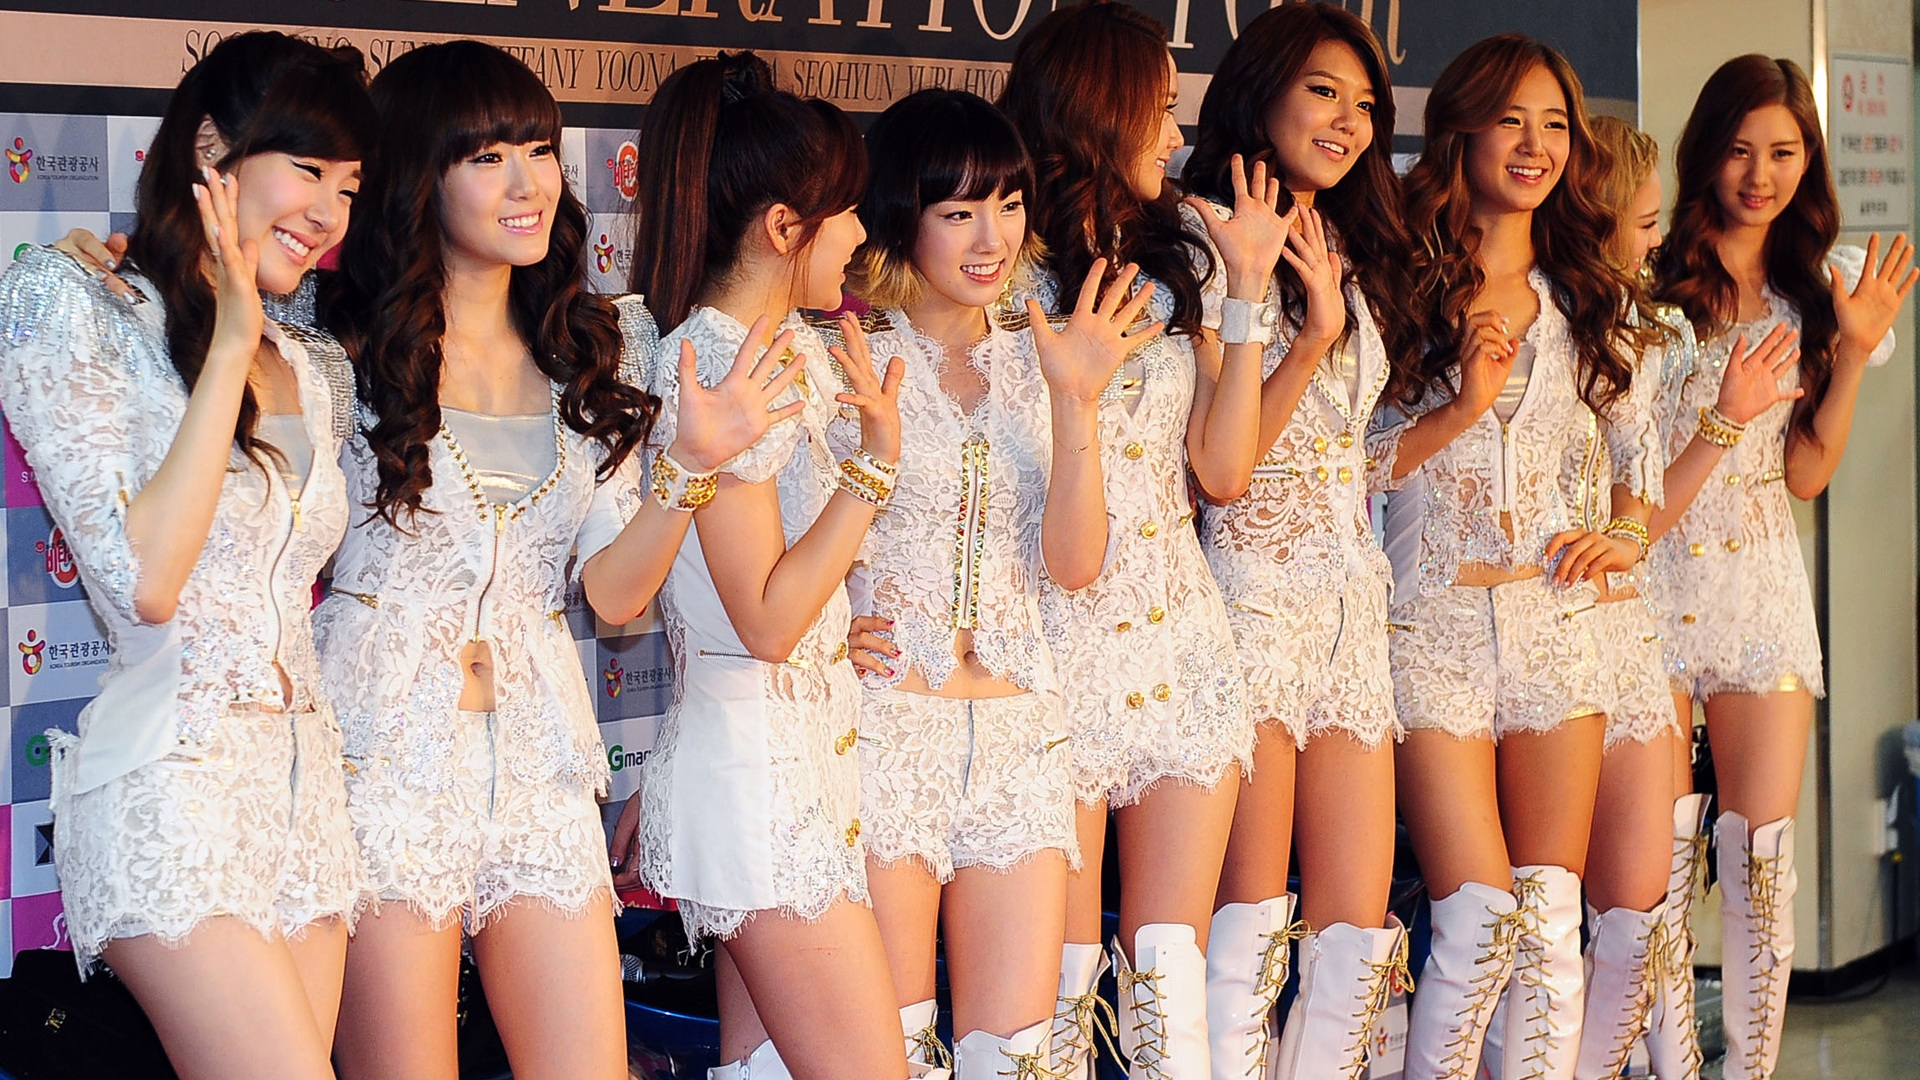 Girl generation sex images — pic 3